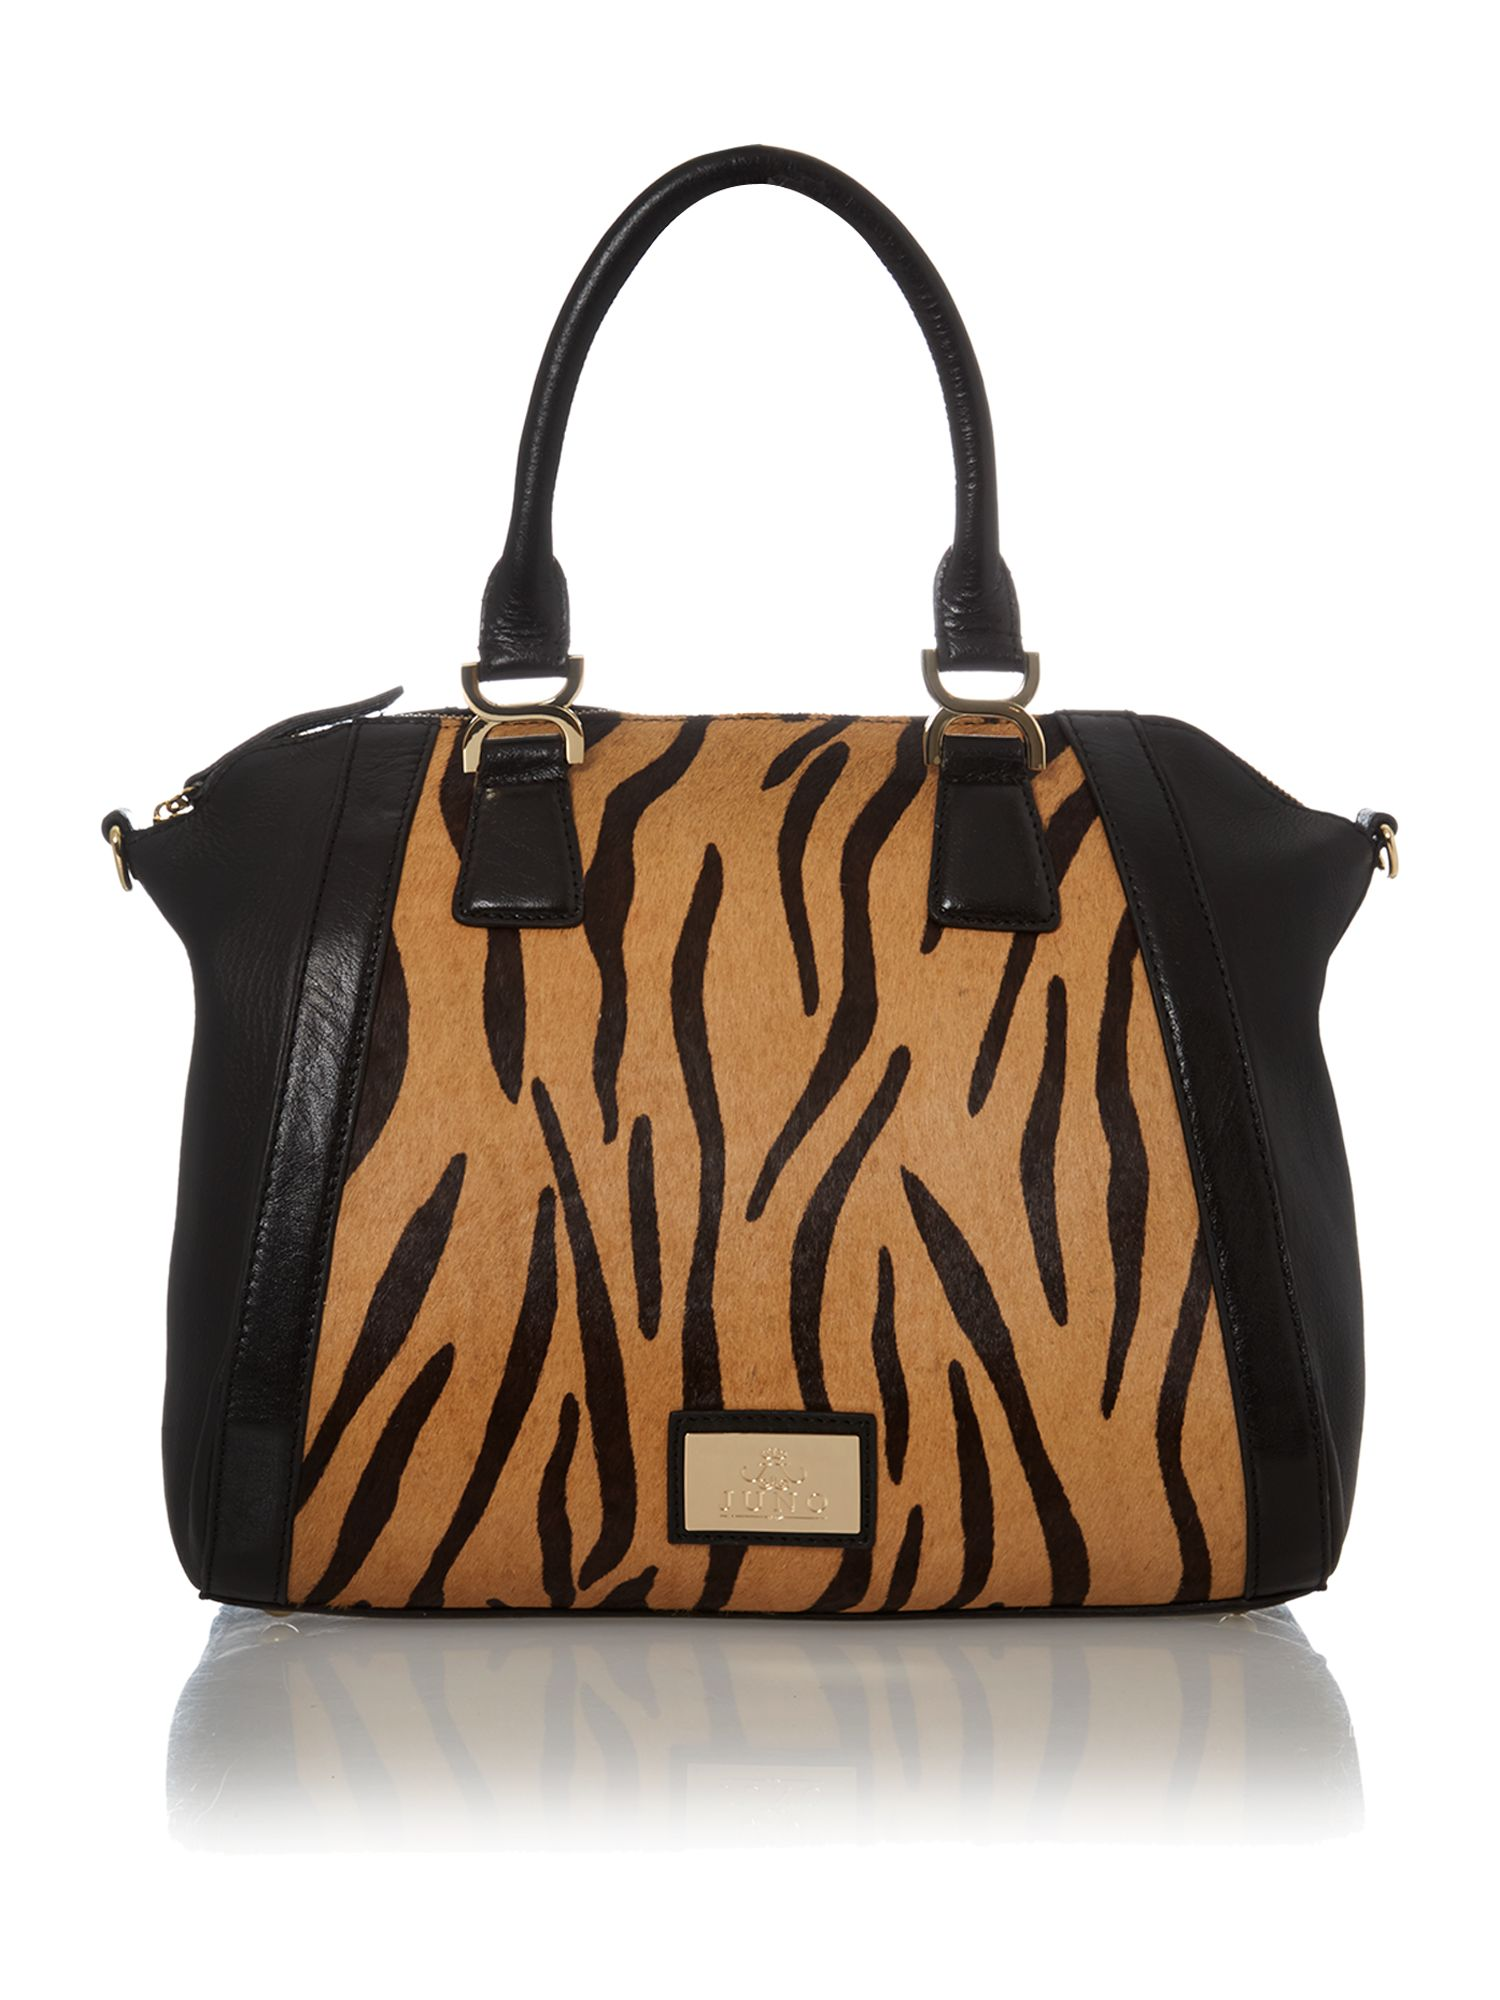 Black and tiger print large leather tote bag